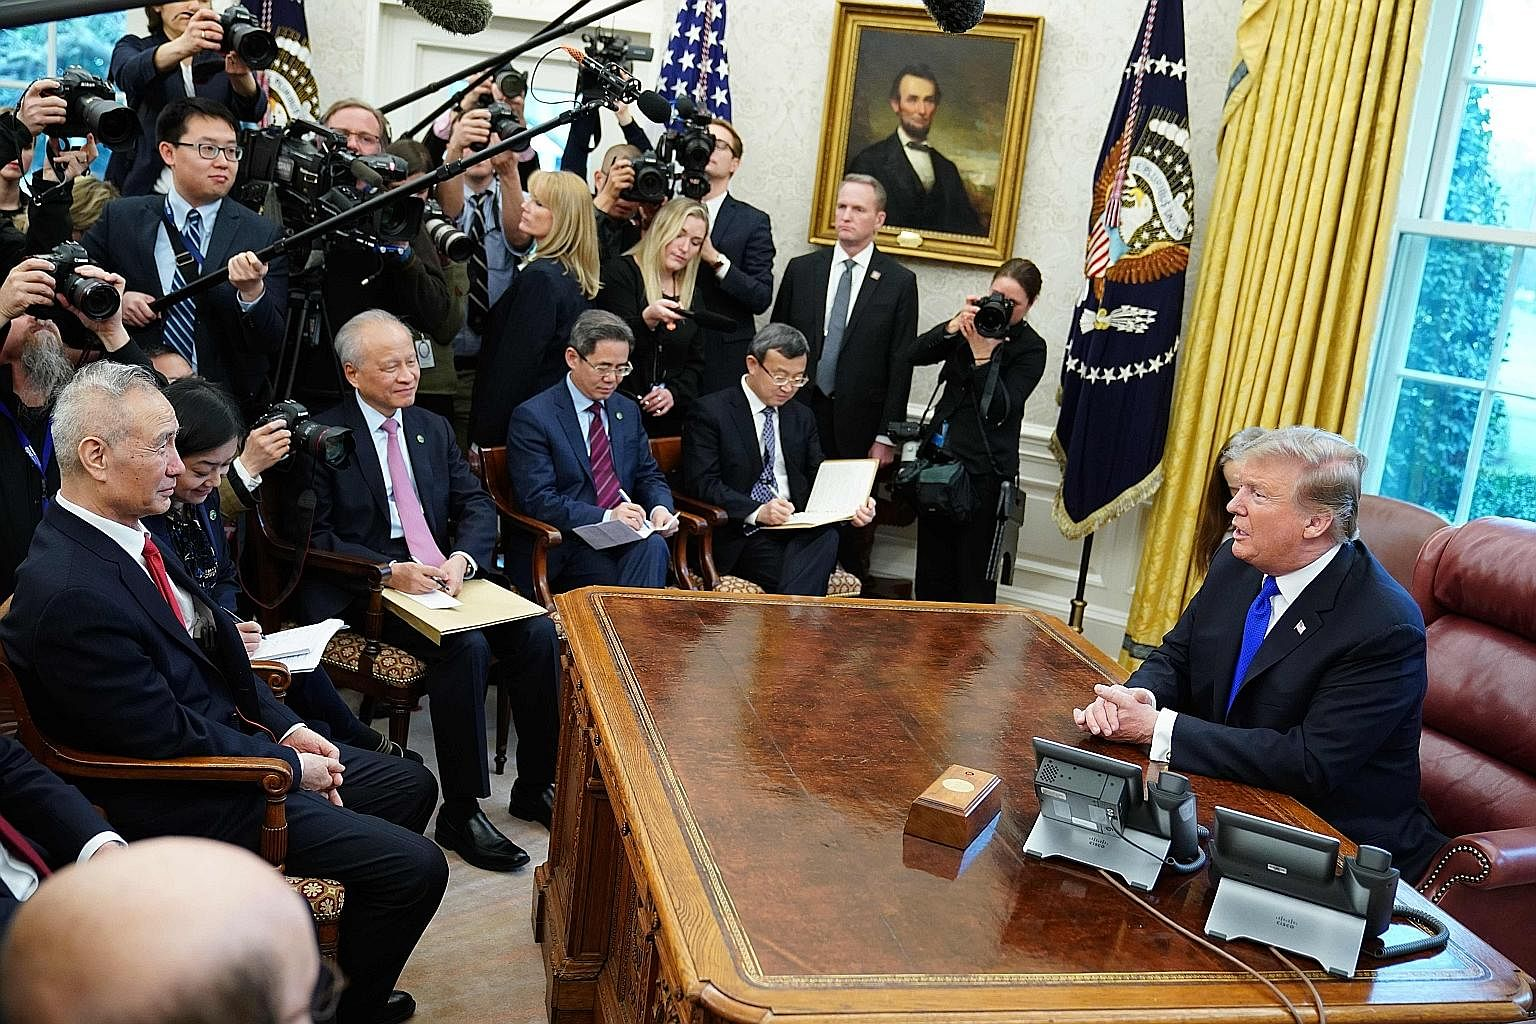 US President Donald Trump in a meeting with China's Vice-Premier Liu He (far left) in the White House's Oval Office on Friday.